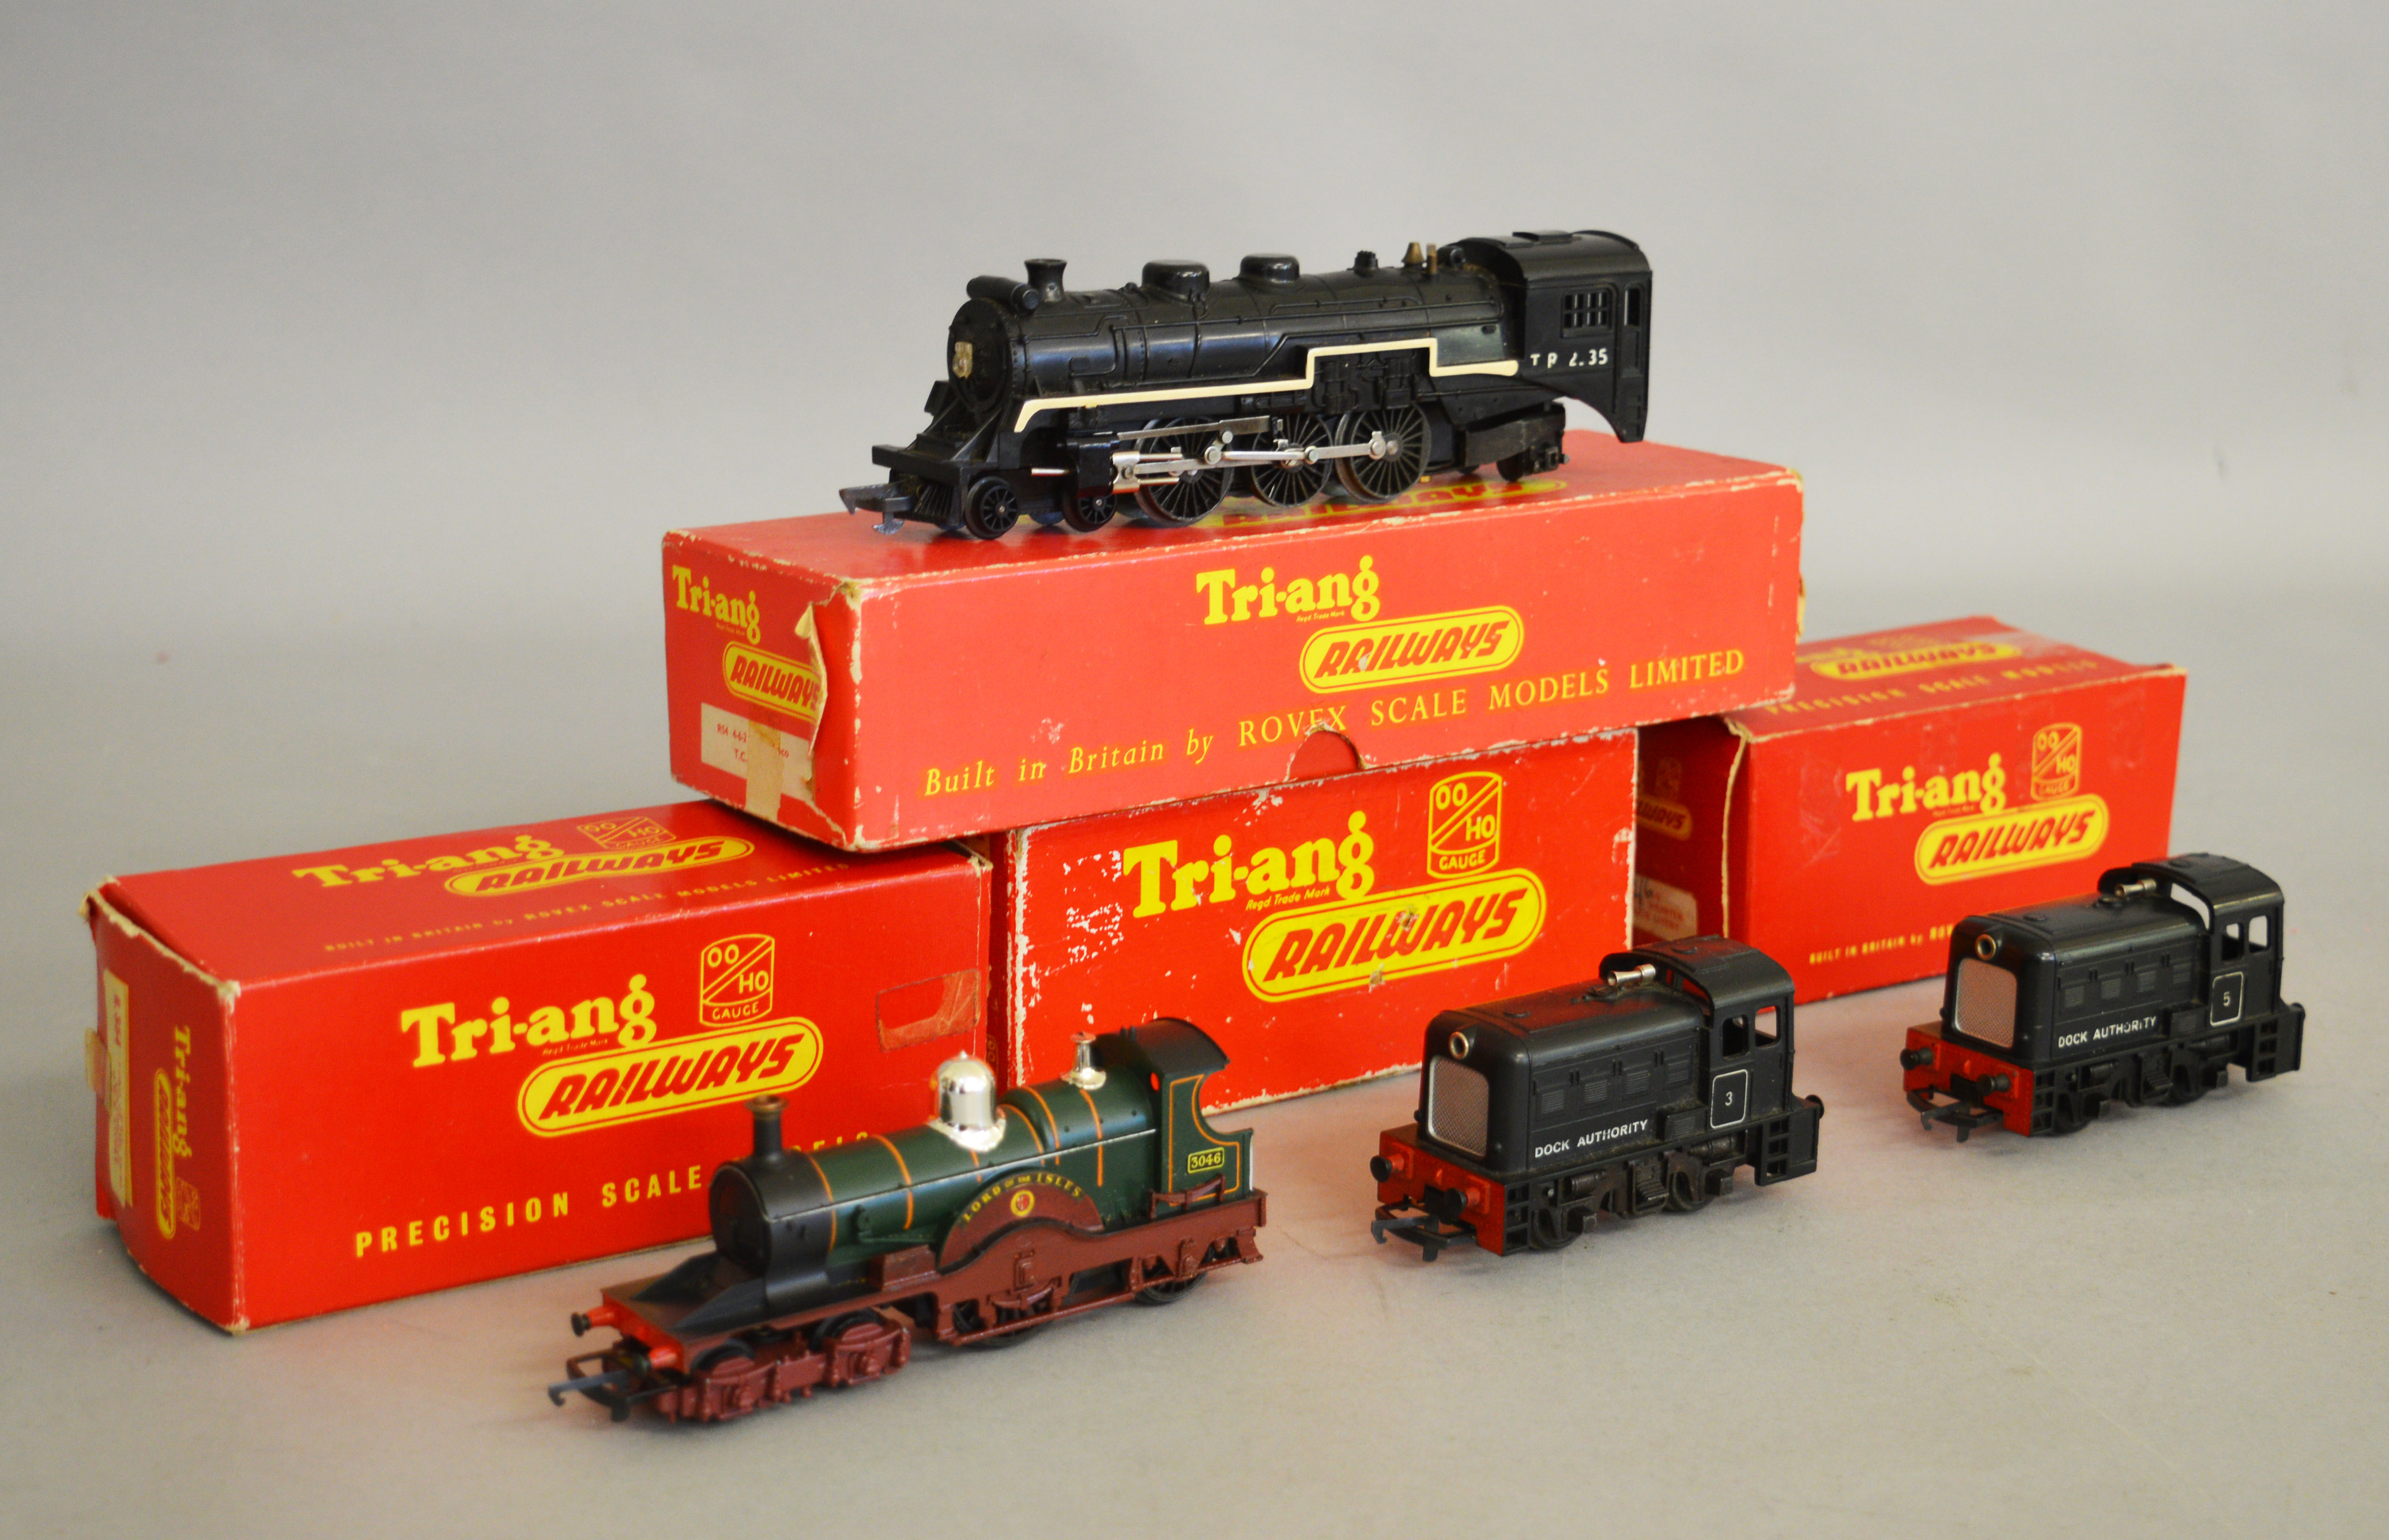 Lot 43 - OO Gauge. Four boxed Tri-ang Locomotives, 2 x R.253 0-4-0 Dock Shunters, one in lidded box, R.